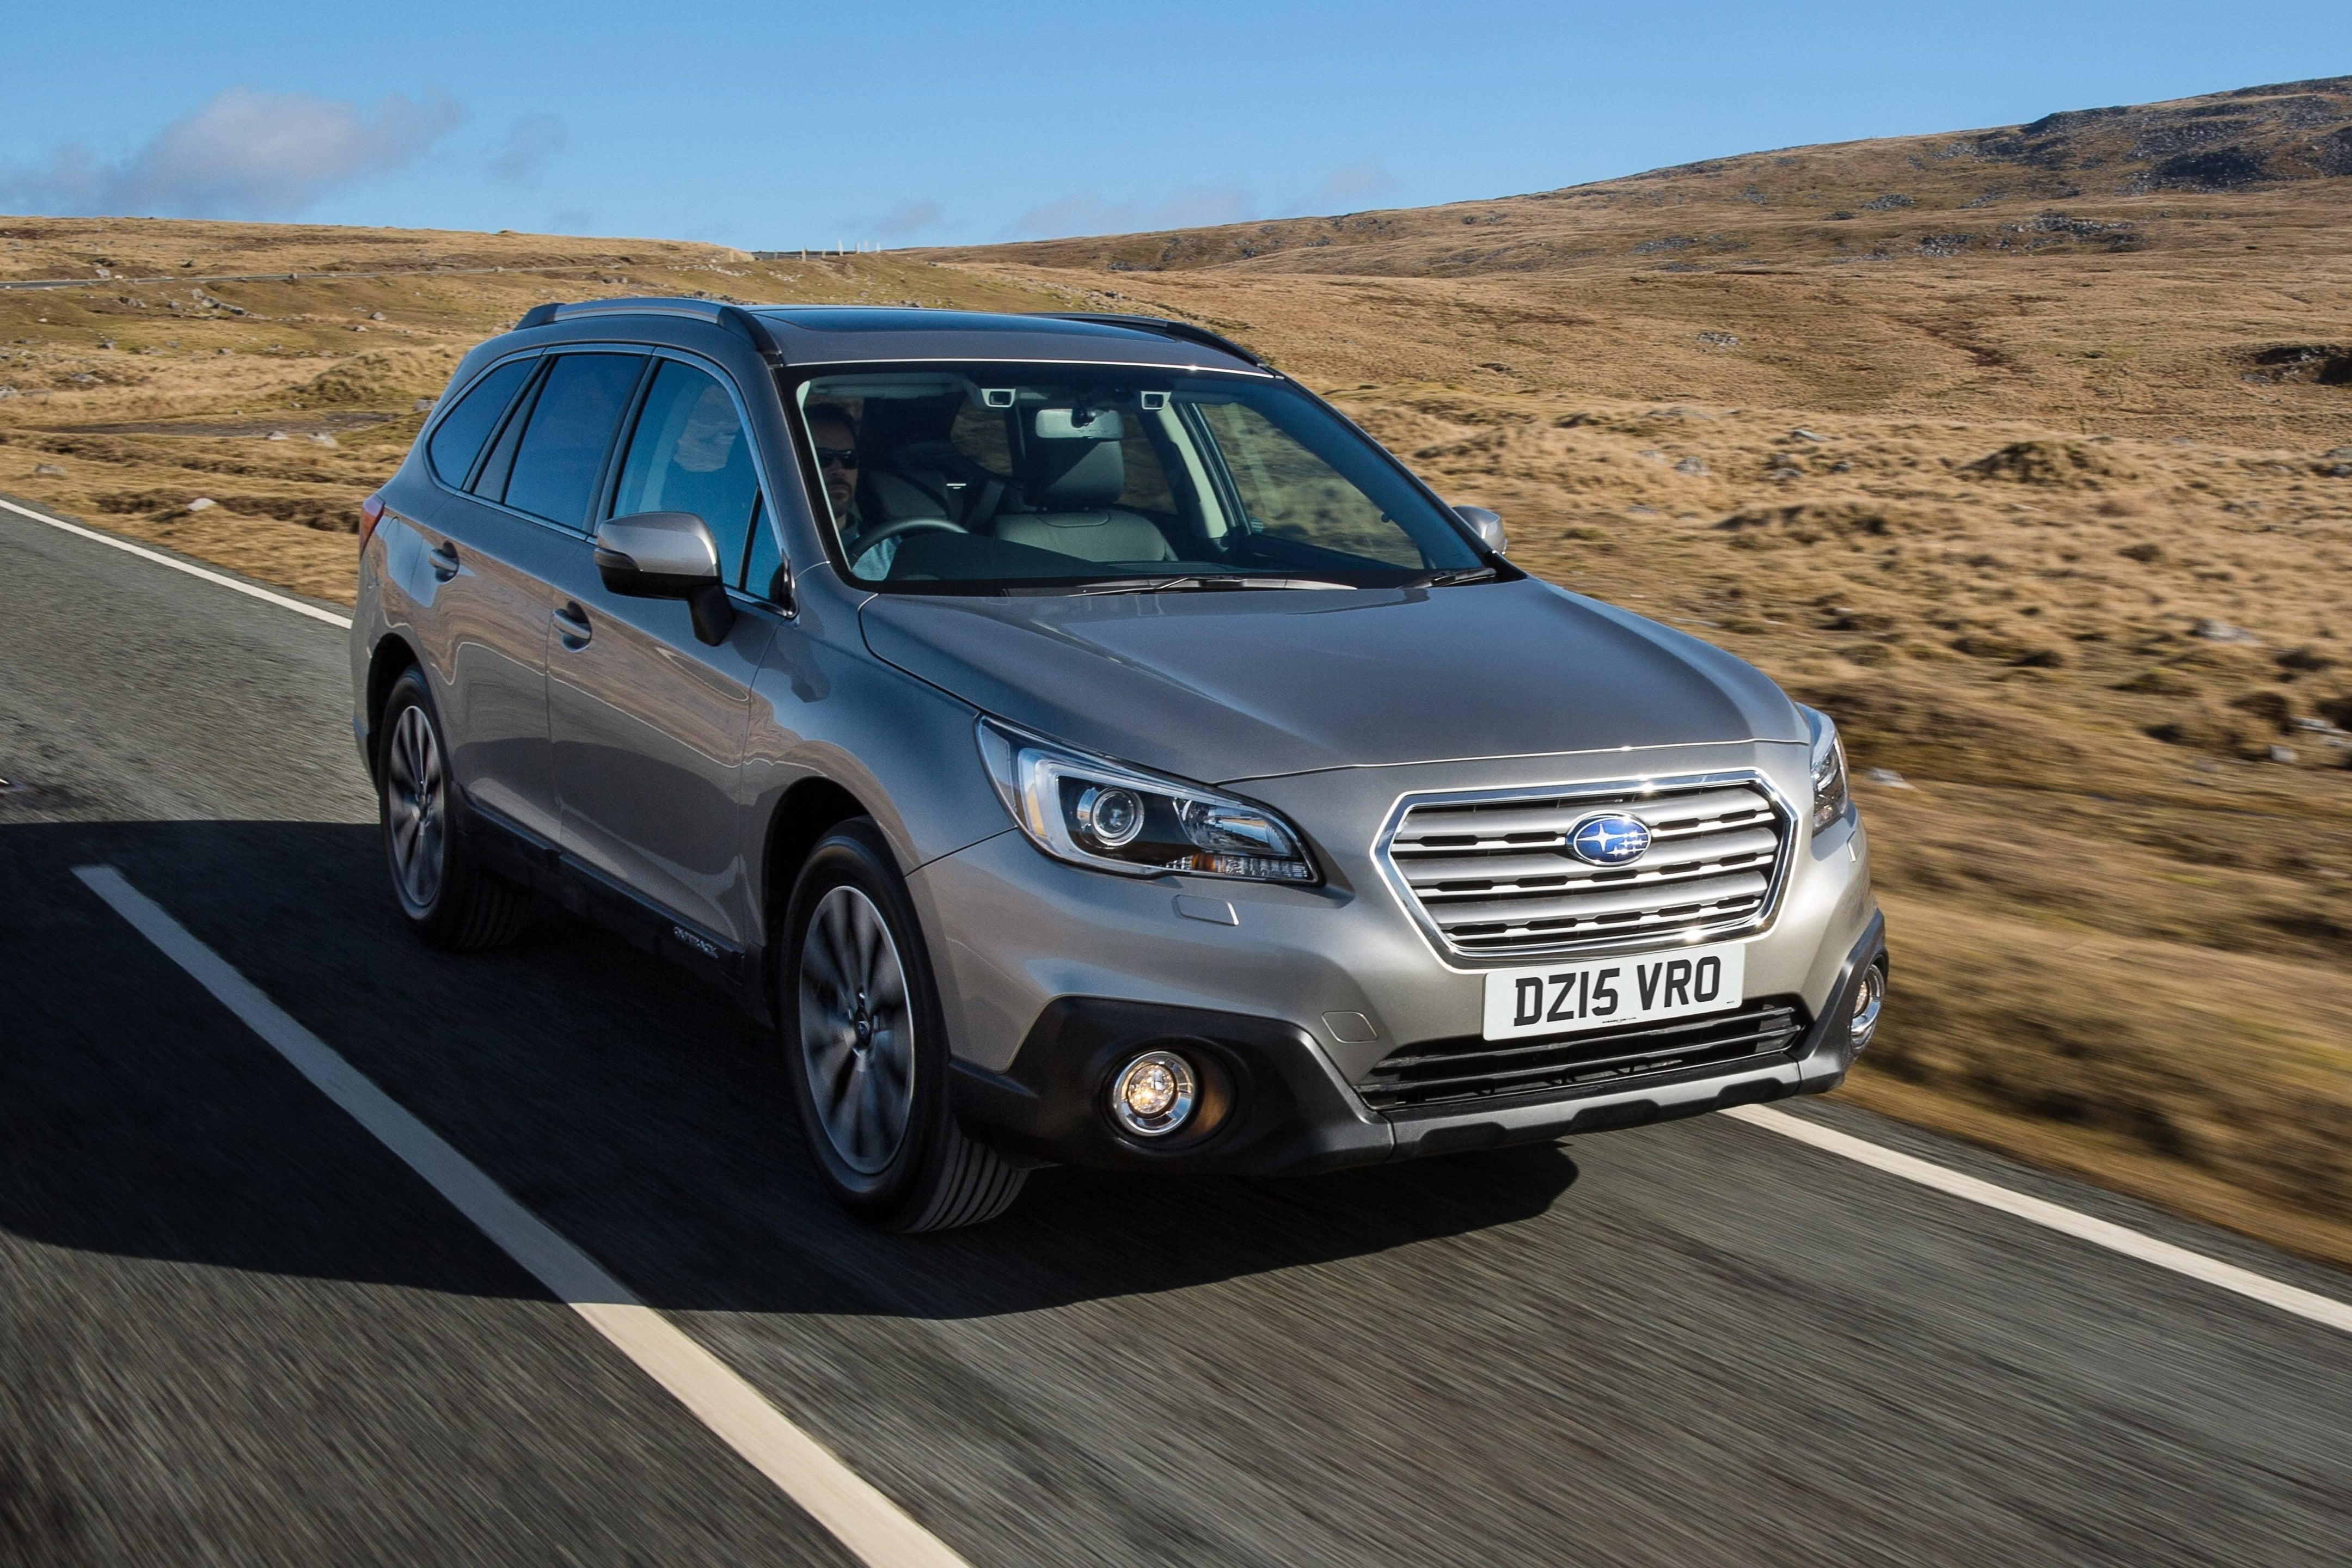 Subaru Outback Front View